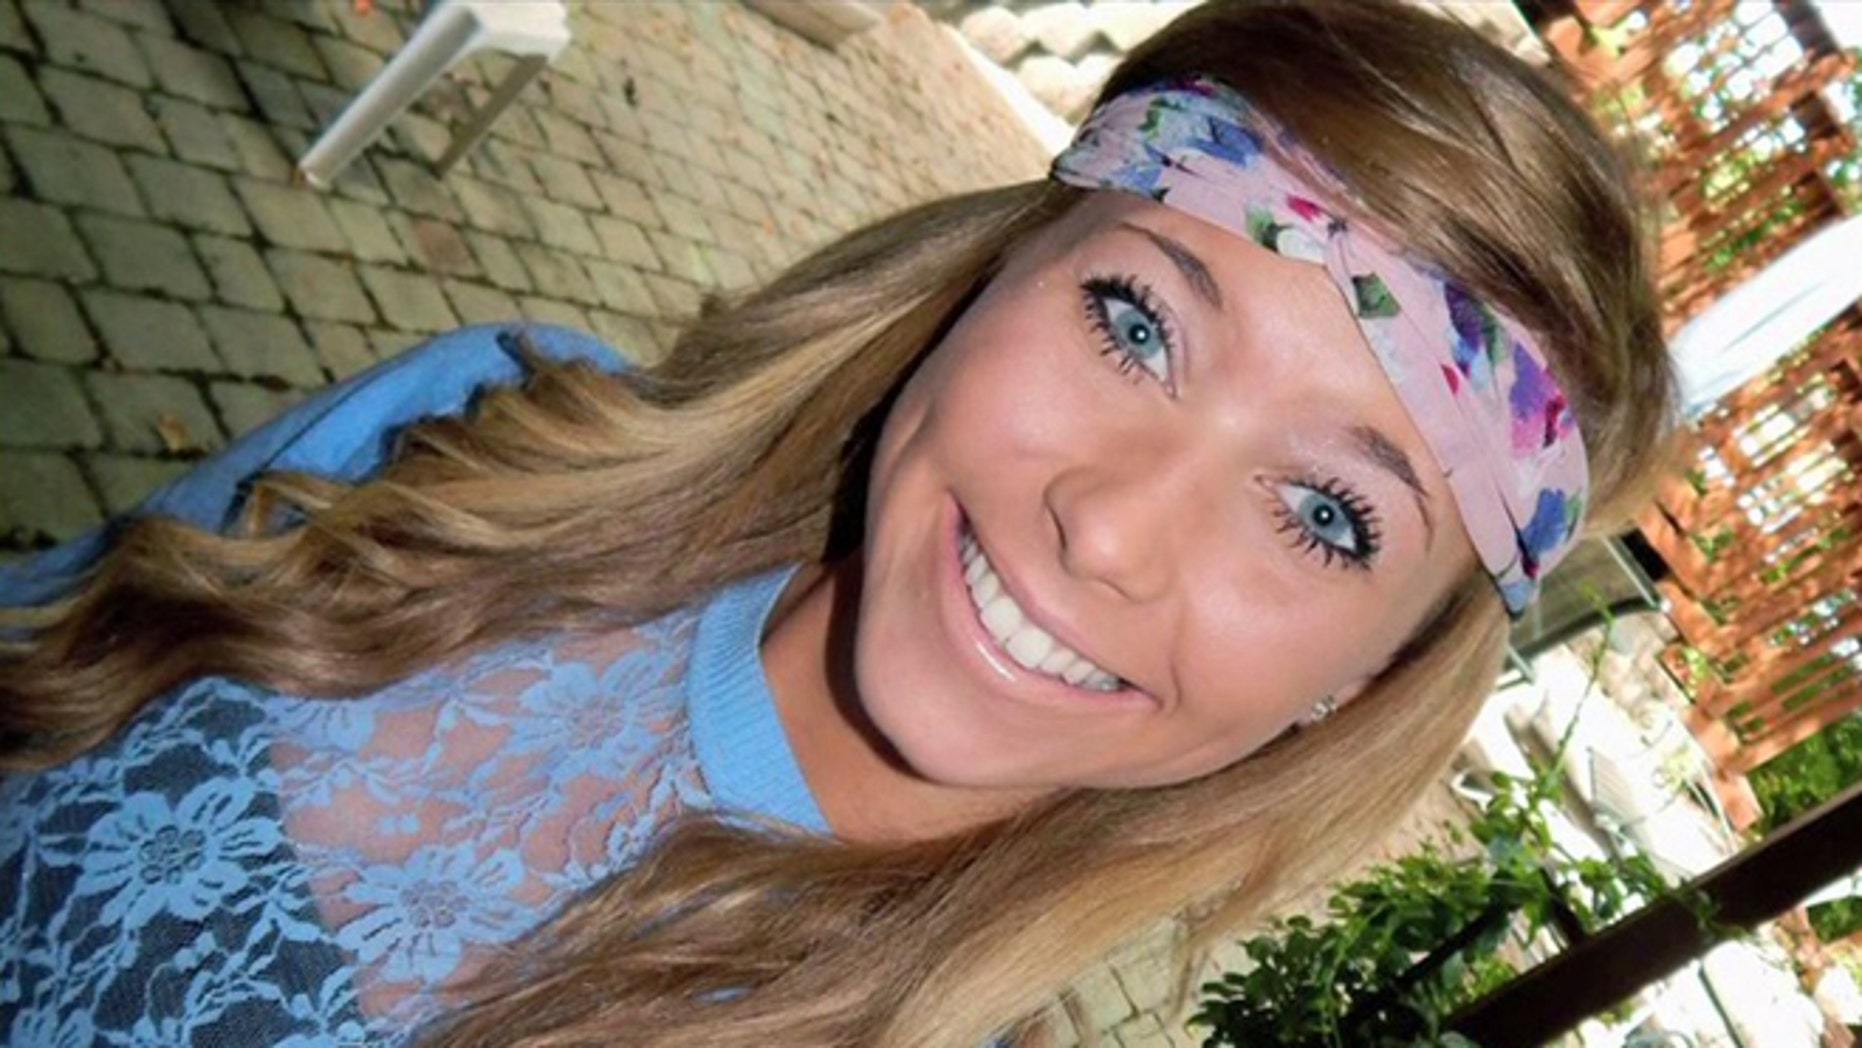 FILE: Aubrey Peters, 16, who saved the lives of two girls three years ago, was fatally shot in the chest Sunday, authorities said.